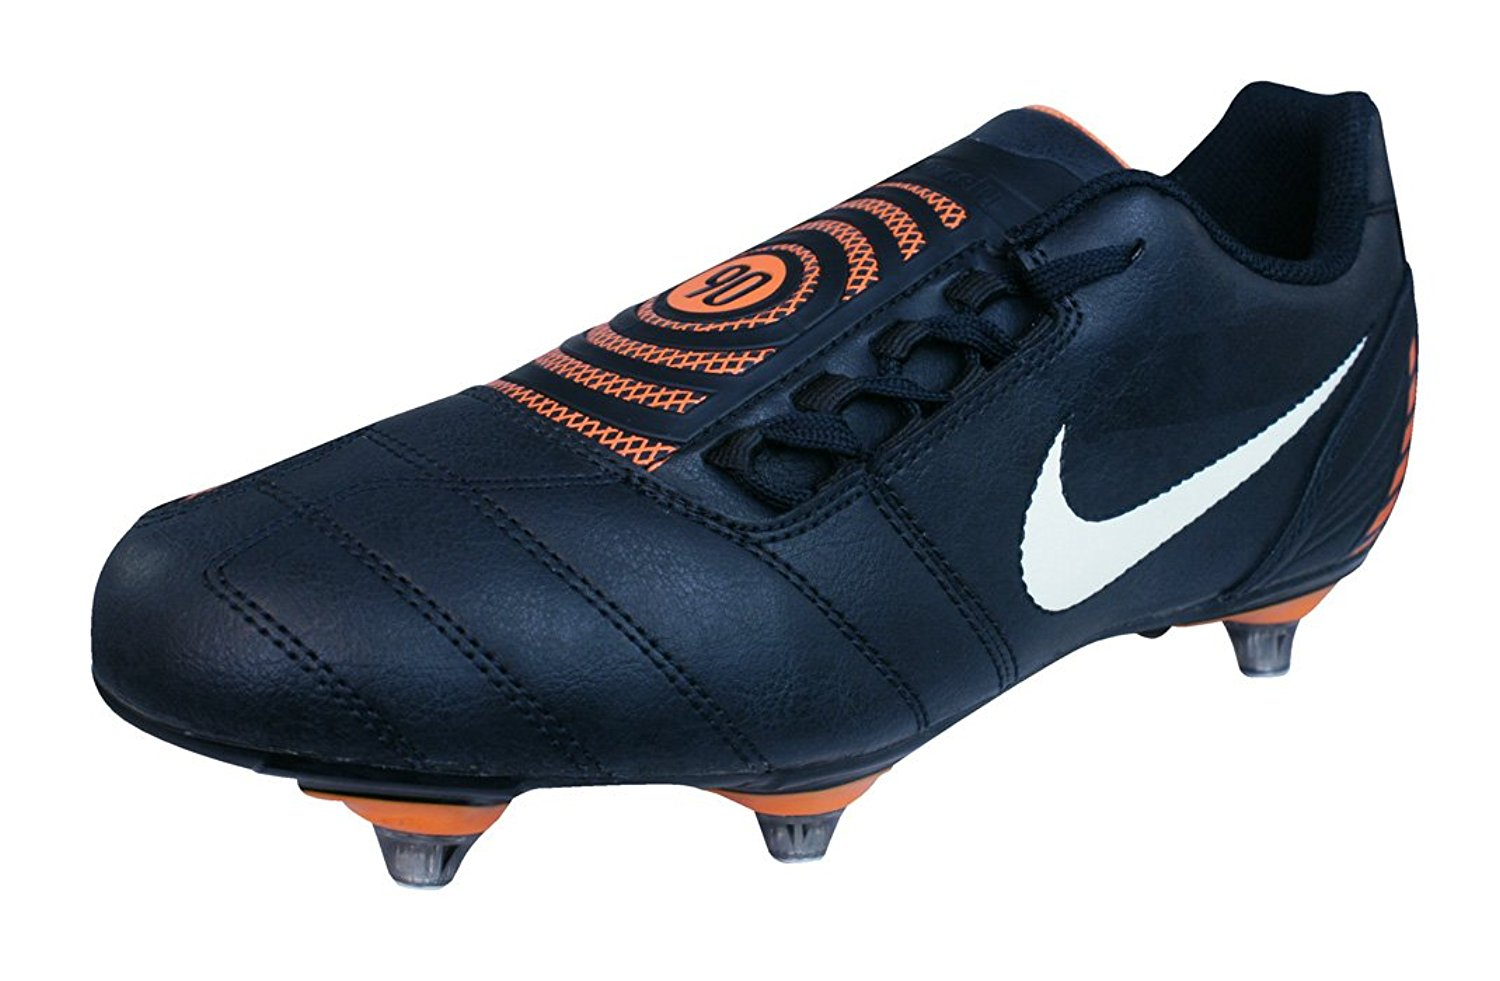 cebd61330a85 Buy Nike Total 90 Laser II SG Football Boots White/Black in Cheap ...